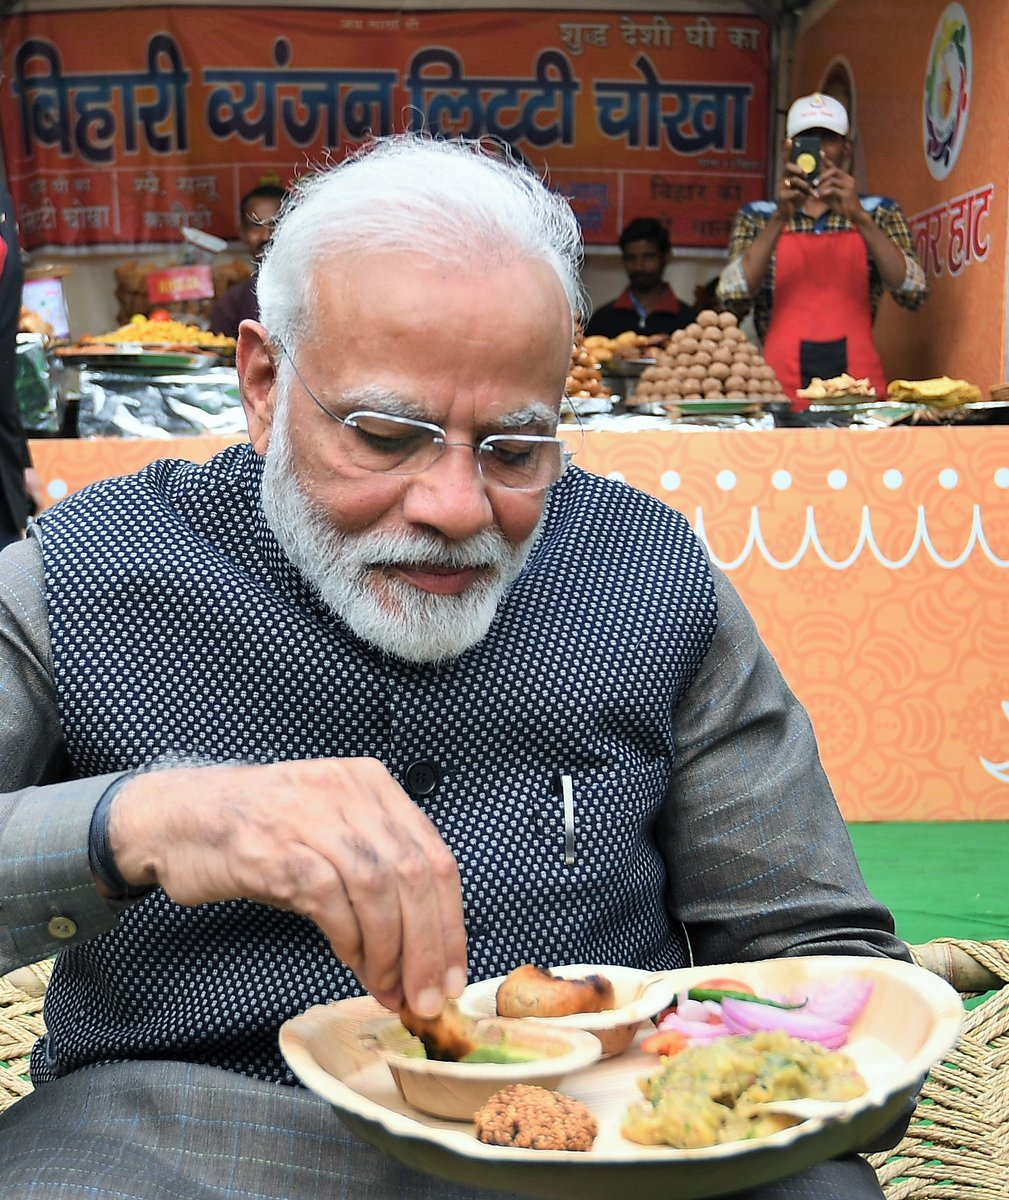 Had tasty Litti Chokha for lunch along with a hot cup of tea... #HunarHaat https://t.co/KGJSNJAyNu